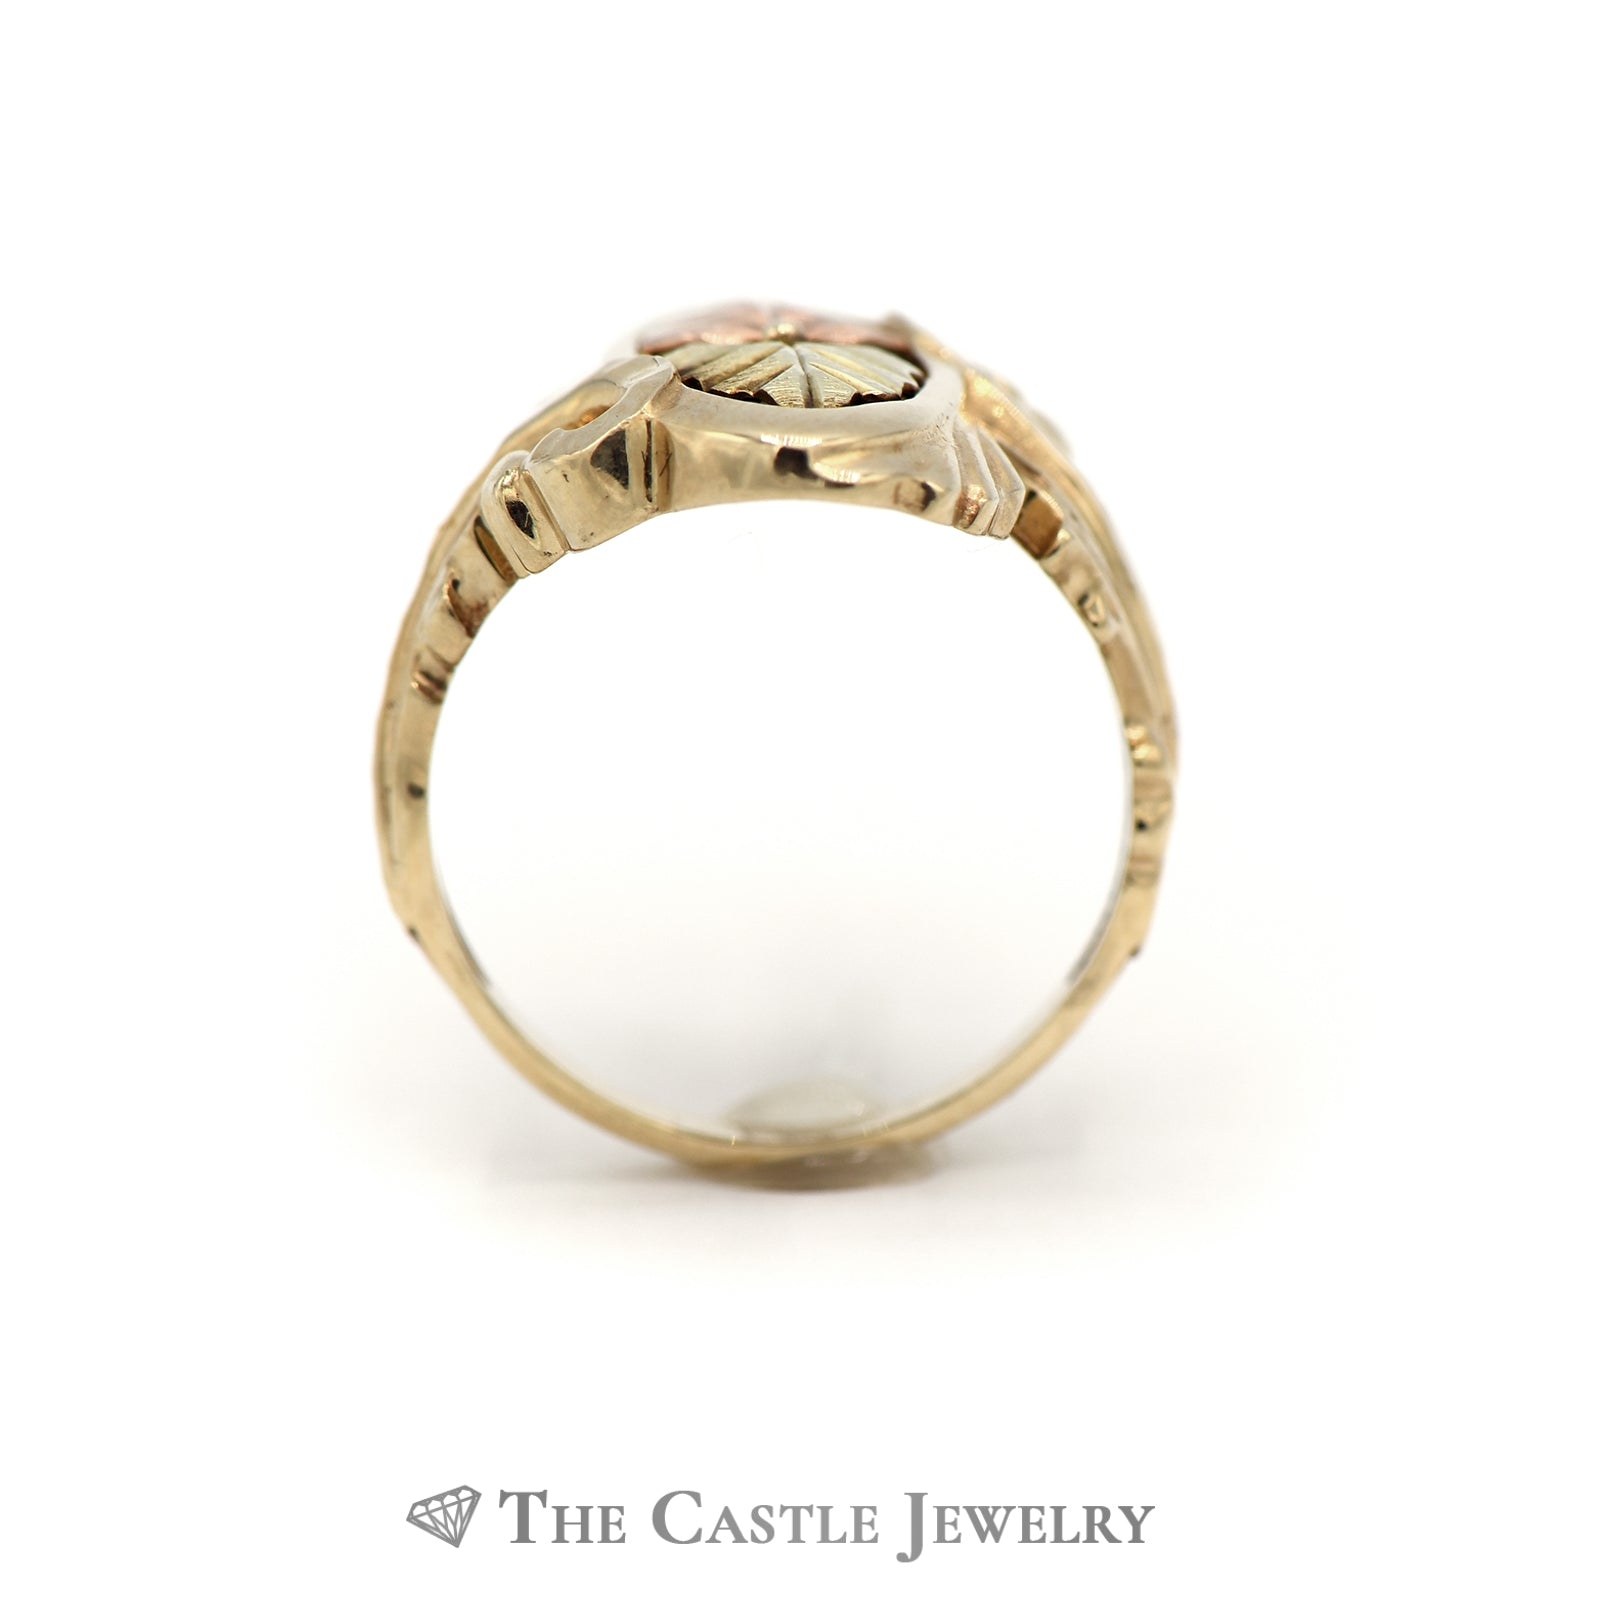 Charming Gold Leaf oval Design Ring Crafted in 10k Tri Gold-1